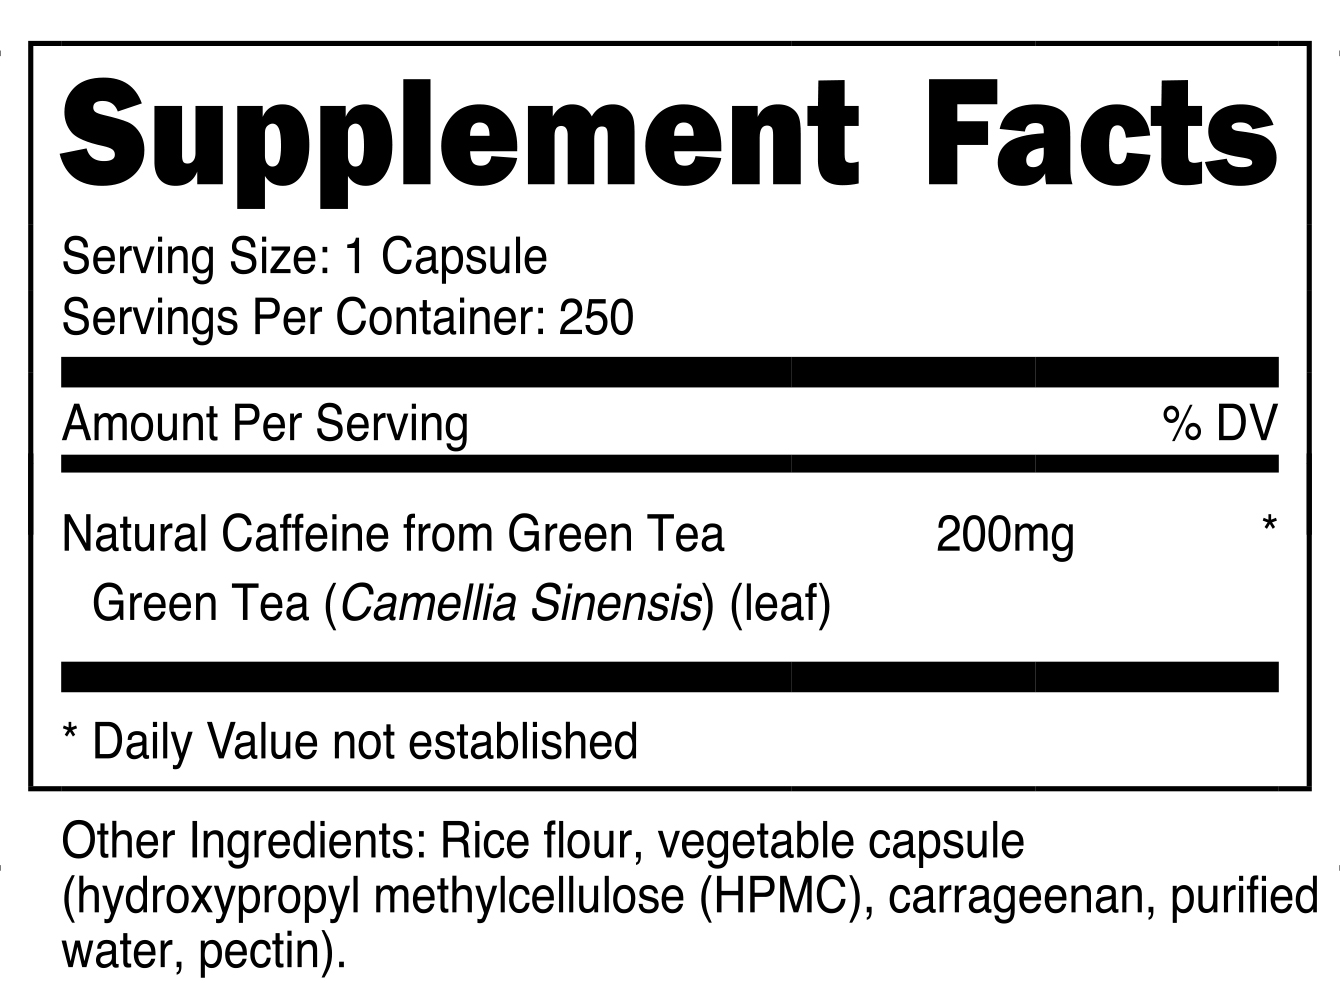 Nutricost Natural Caffeine Supplement Facts